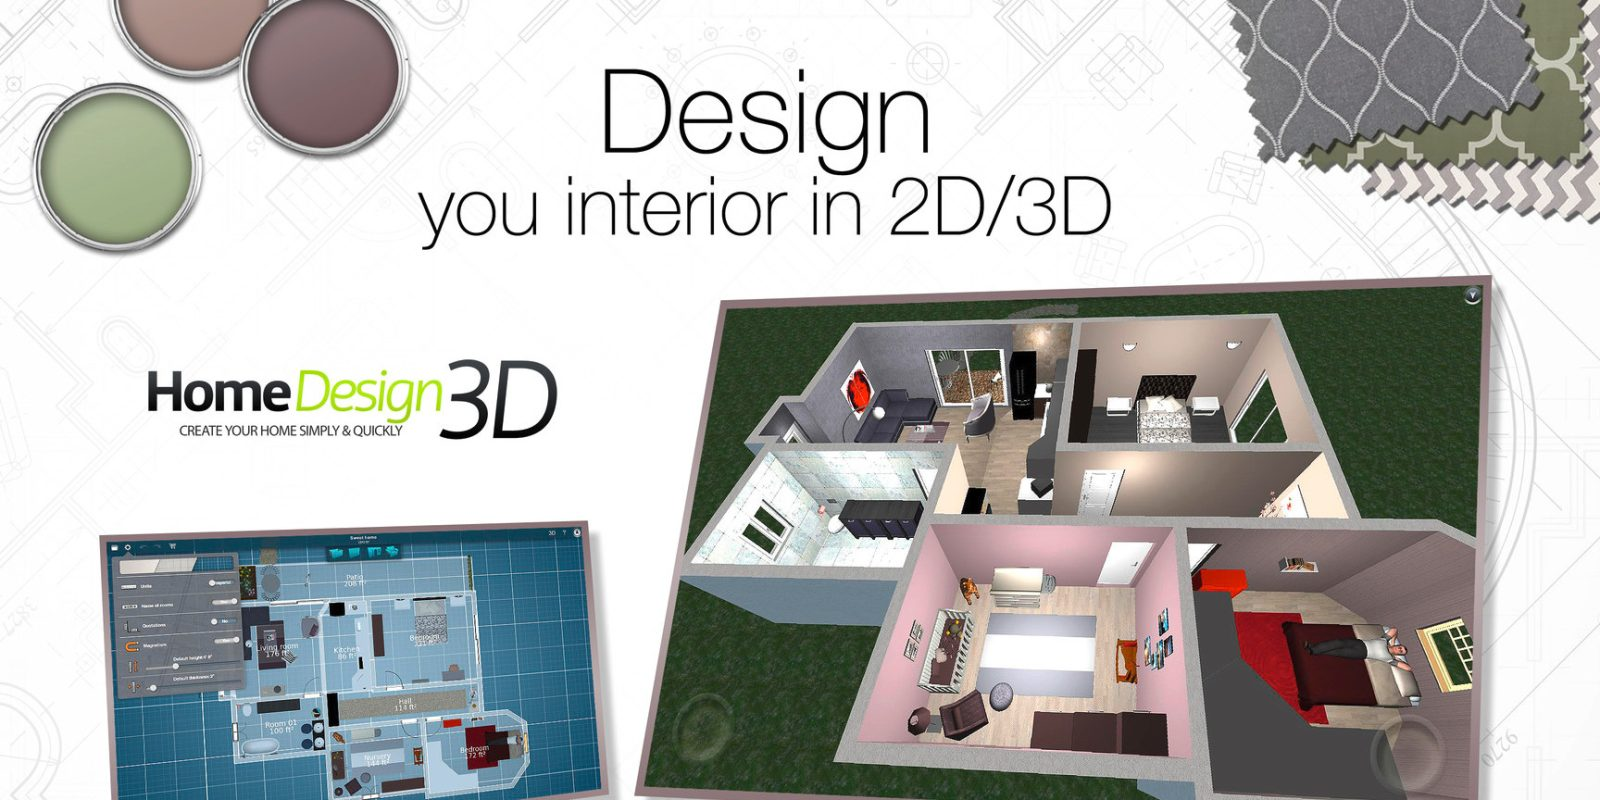 Home Designer 3D for iOS/Mac goes free for the first time, GOLD ...